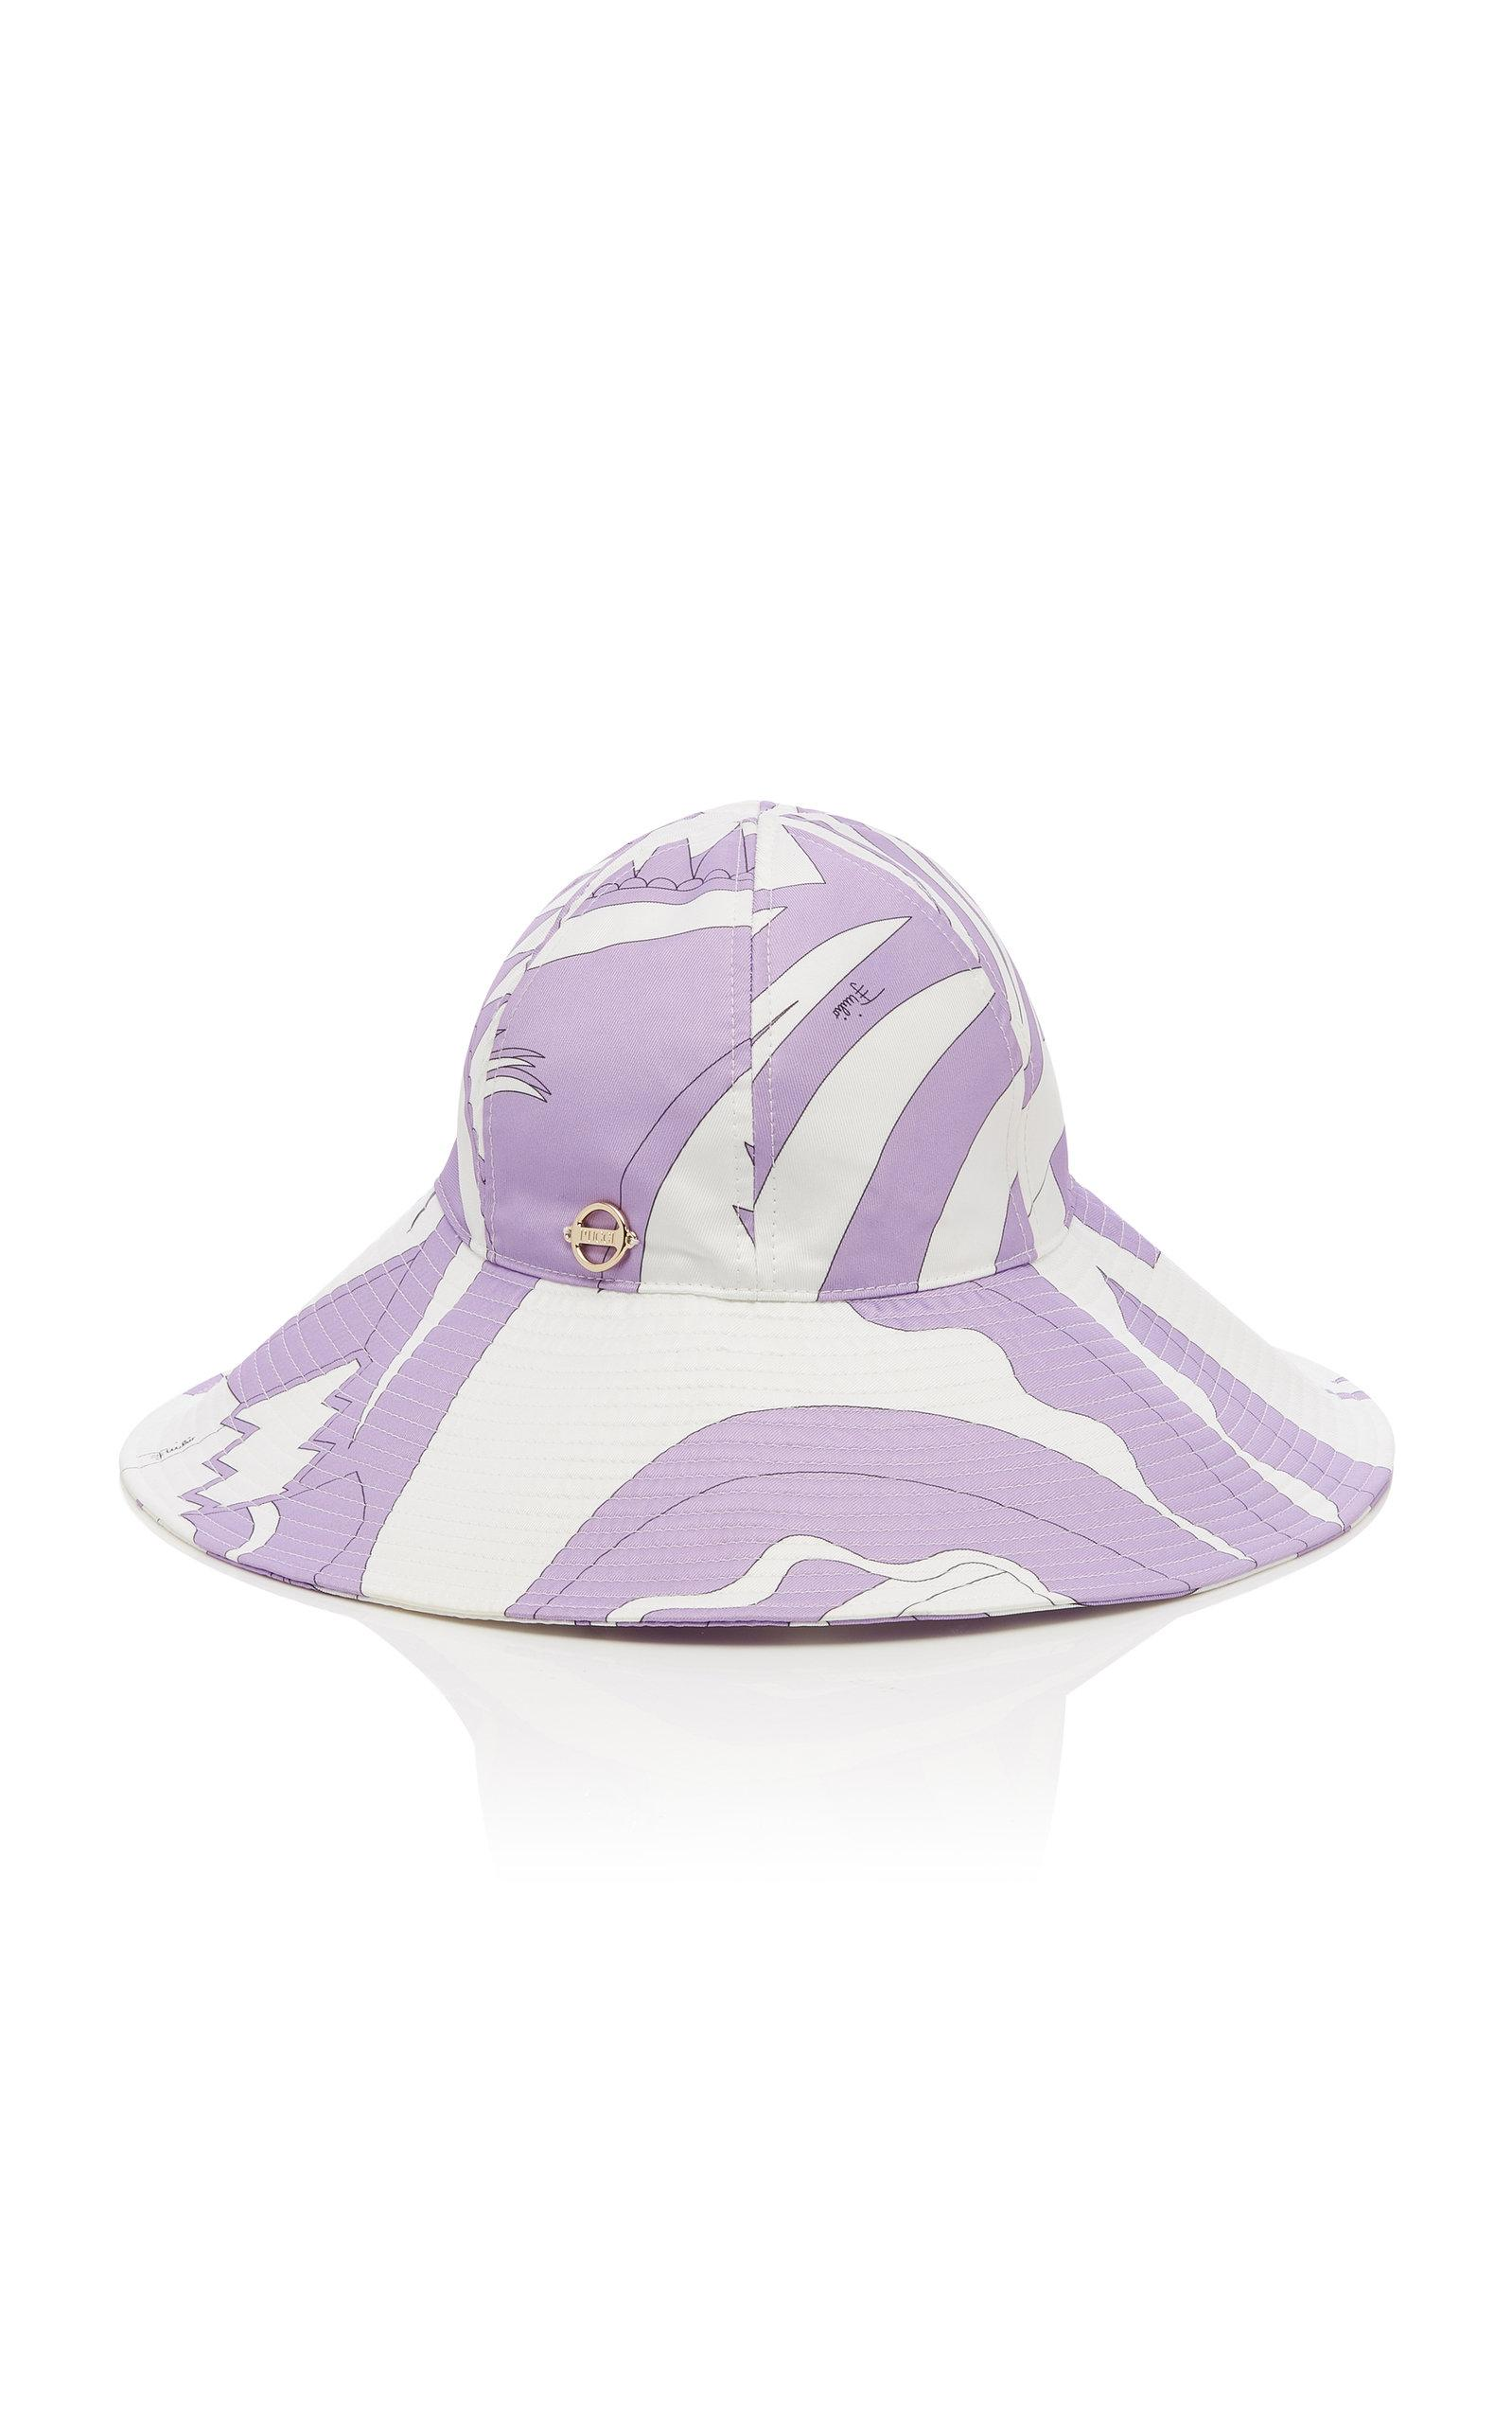 a74d94c53c5e4 Lyst - Emilio Pucci Printed Wide-brimmed Bucket Hat in Purple